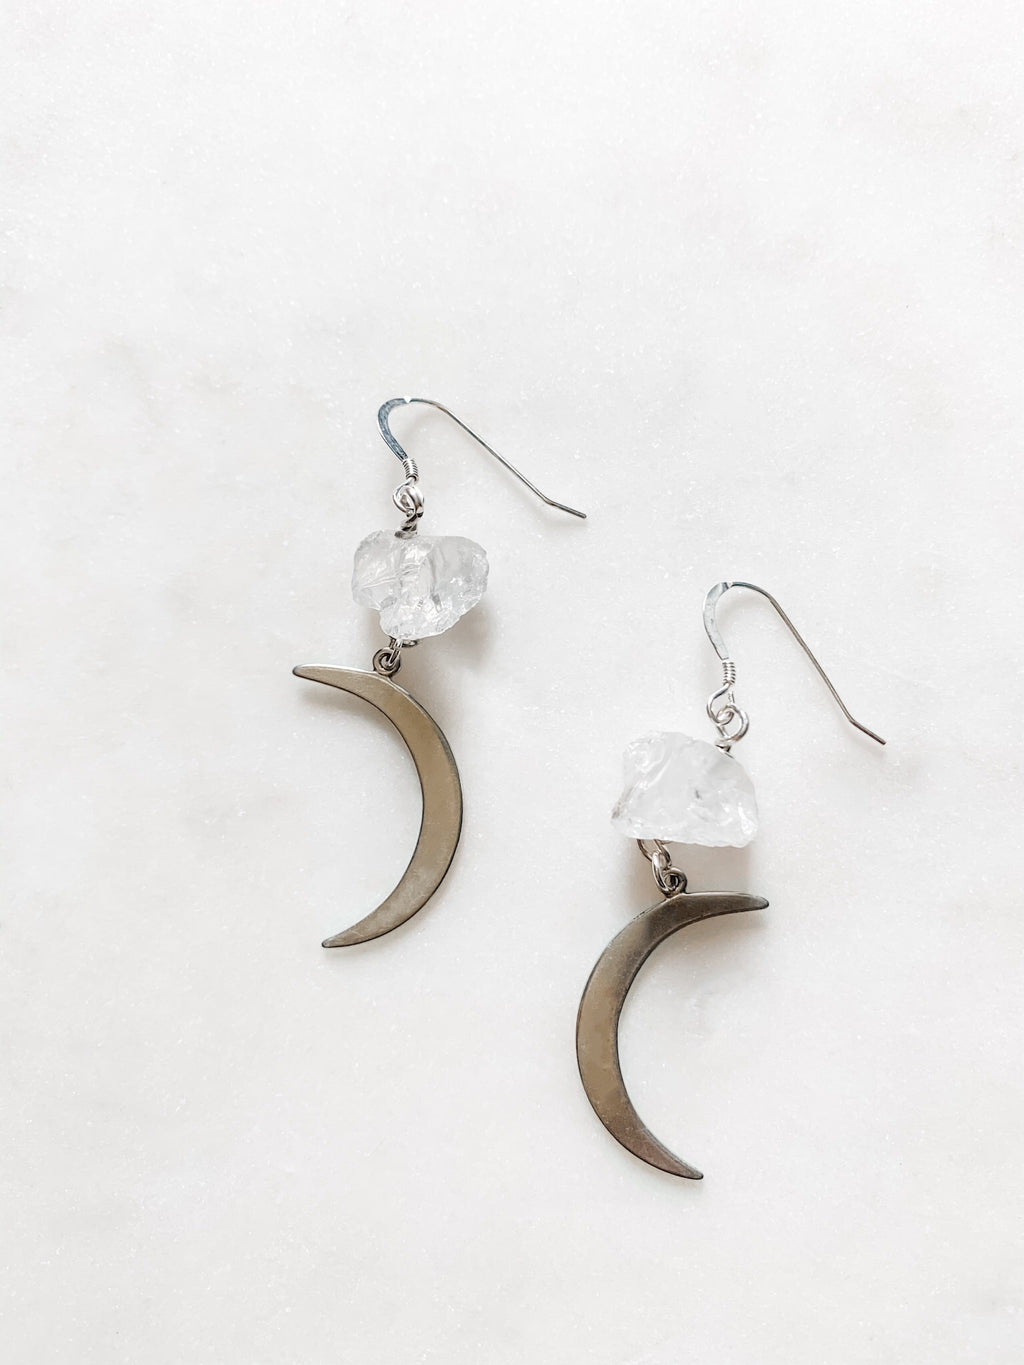 Celine - Quartz Crescent Moon Earrings - The Pretty Eclectic